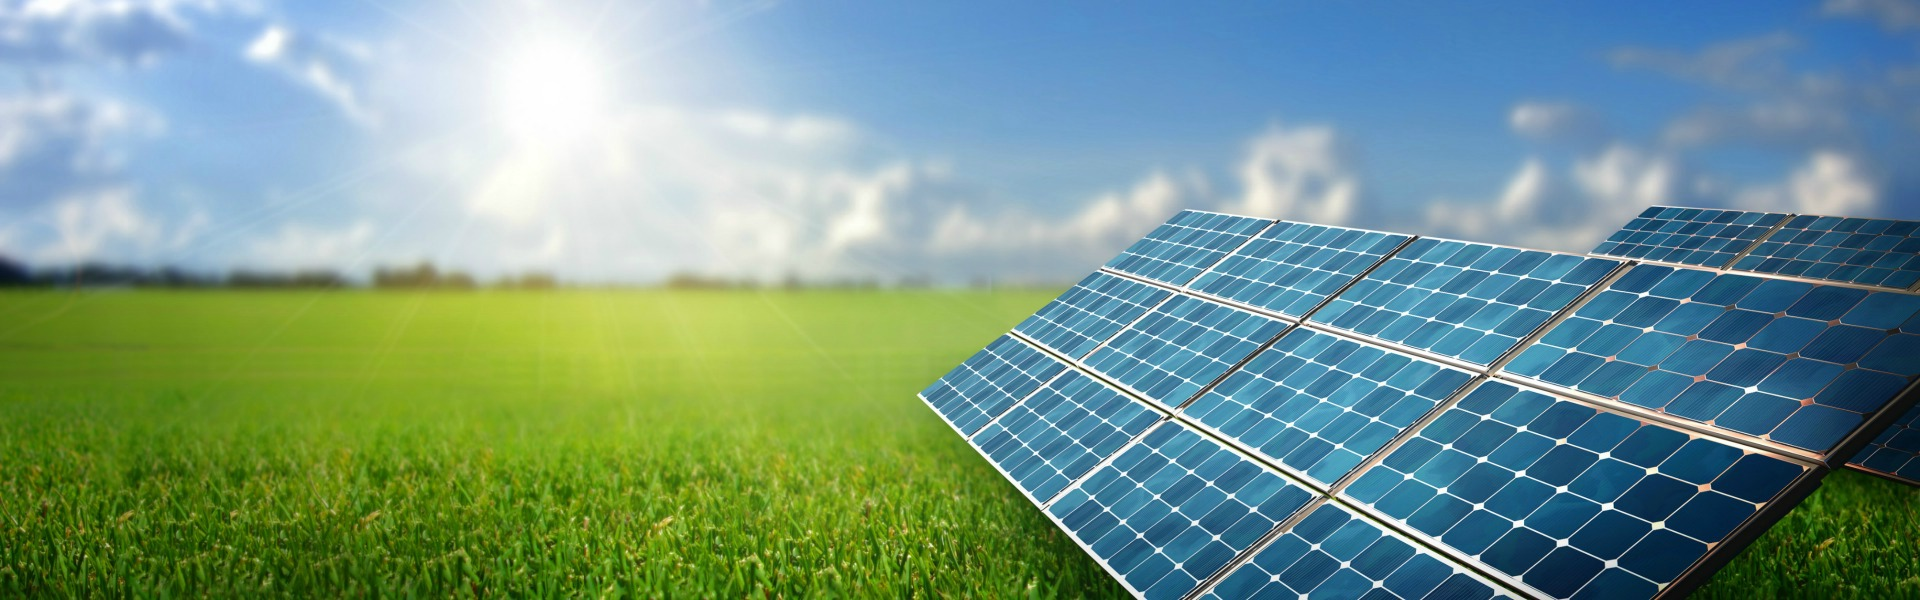 North Wales Renewable Energy Installers Solar Pv Air